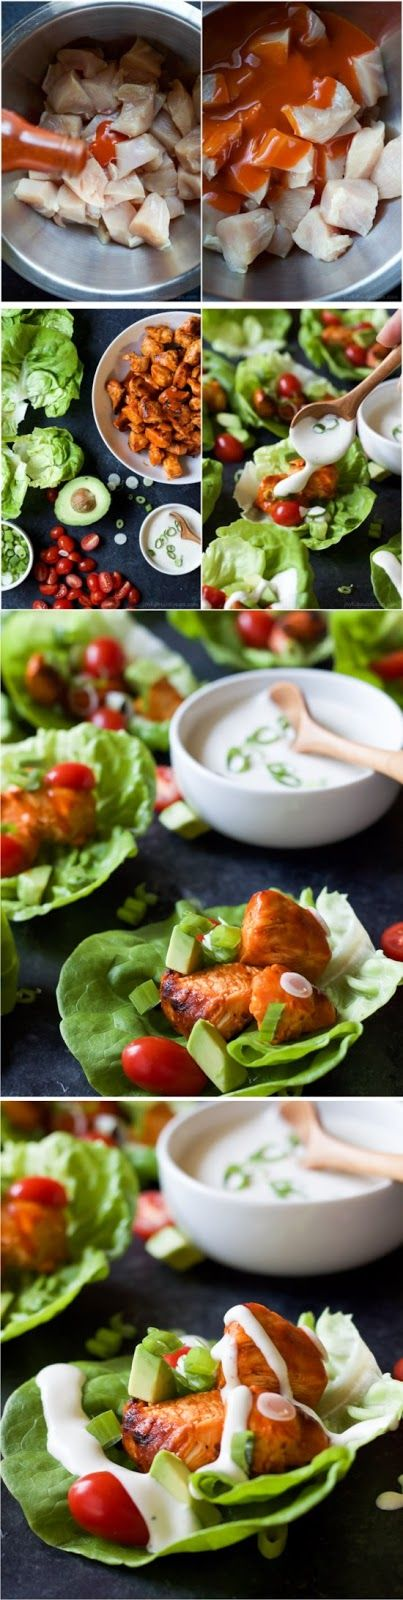 Grilled Buffalo Chicken Lettuce Wraps Healthy Recipe  We don't watch a whole lot of college football, but I can appreciate it. I do think it is way more exciting to watch than NFL games and sometimes it makes me wish I was back in college again.